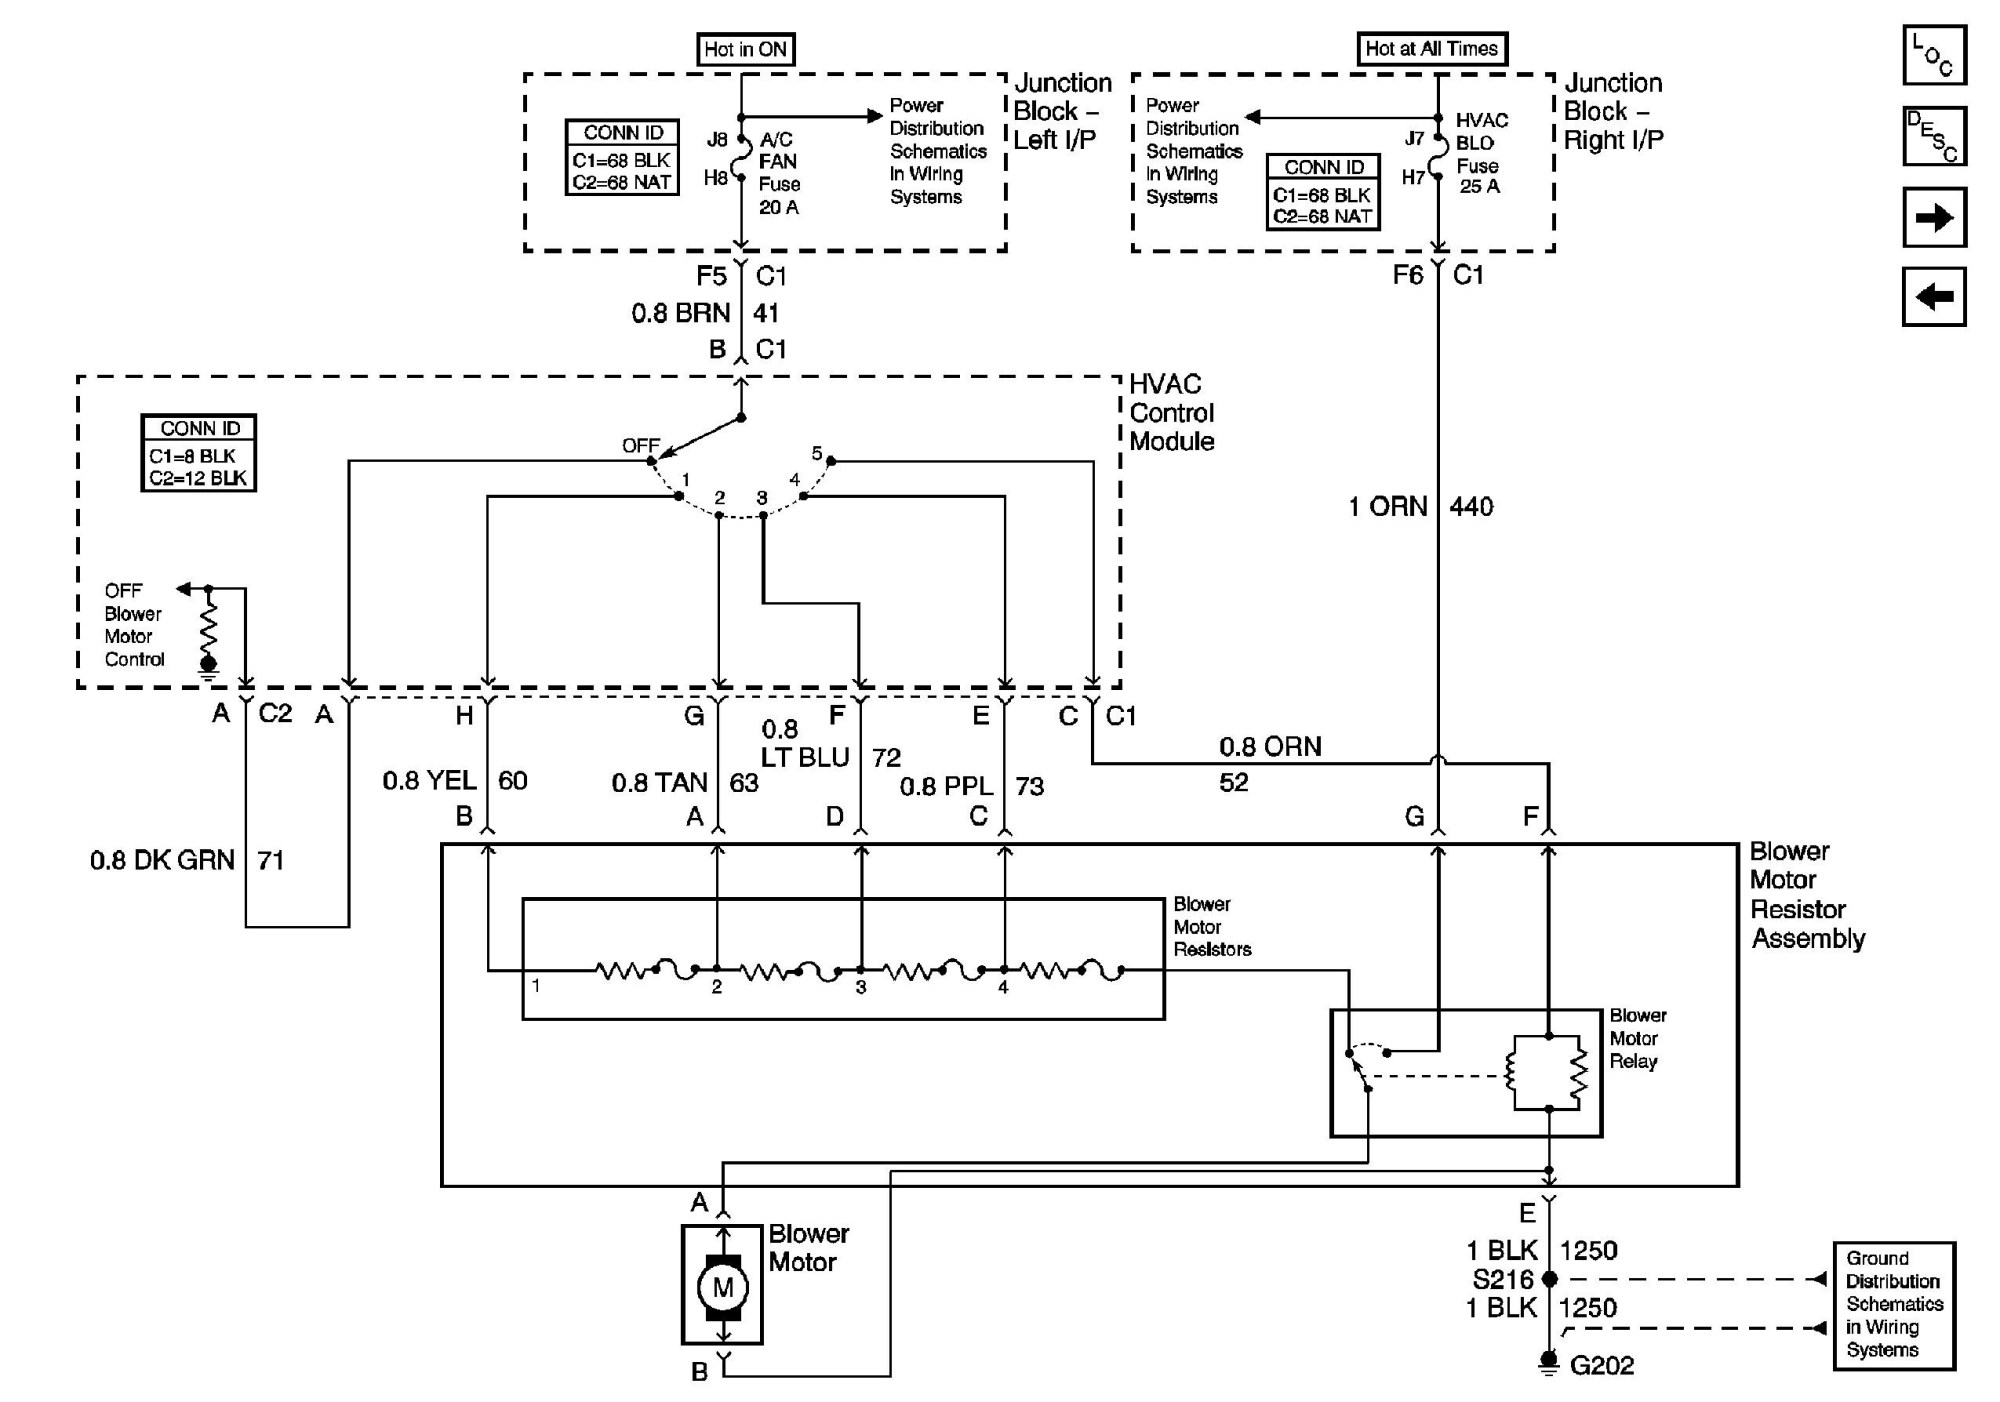 hight resolution of 2006 chevrolet hhr blower motor wiring diagram wiring diagram charging system wiring diagram 2006 chevrolet hhr